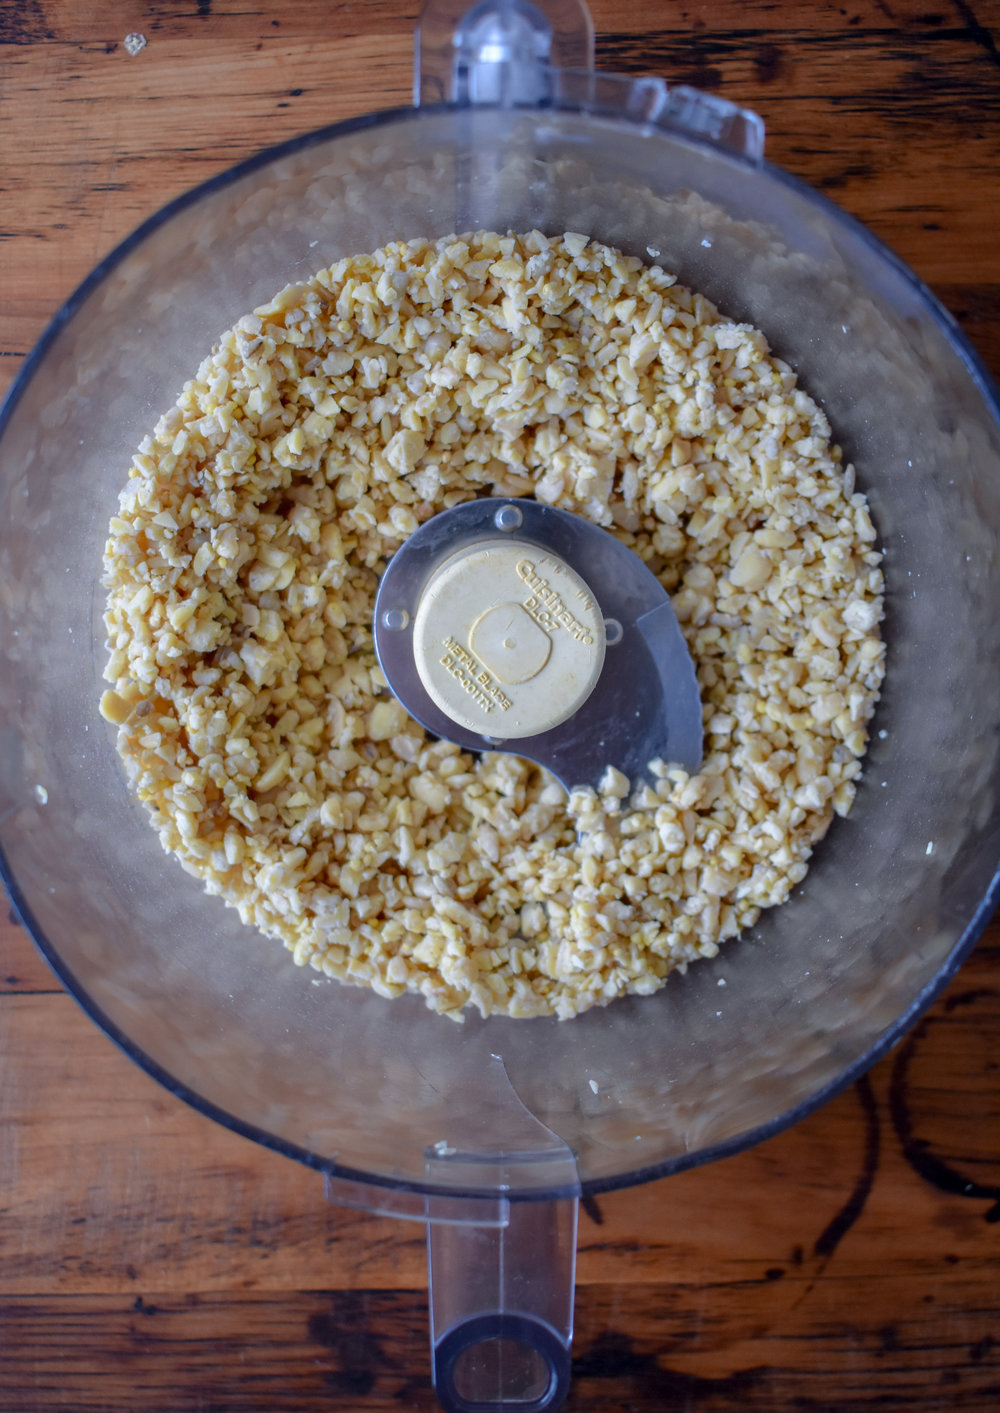 1. While the lentils cook, add tempeh to food processor and blend until tempeh becomes like oversized rice granules.